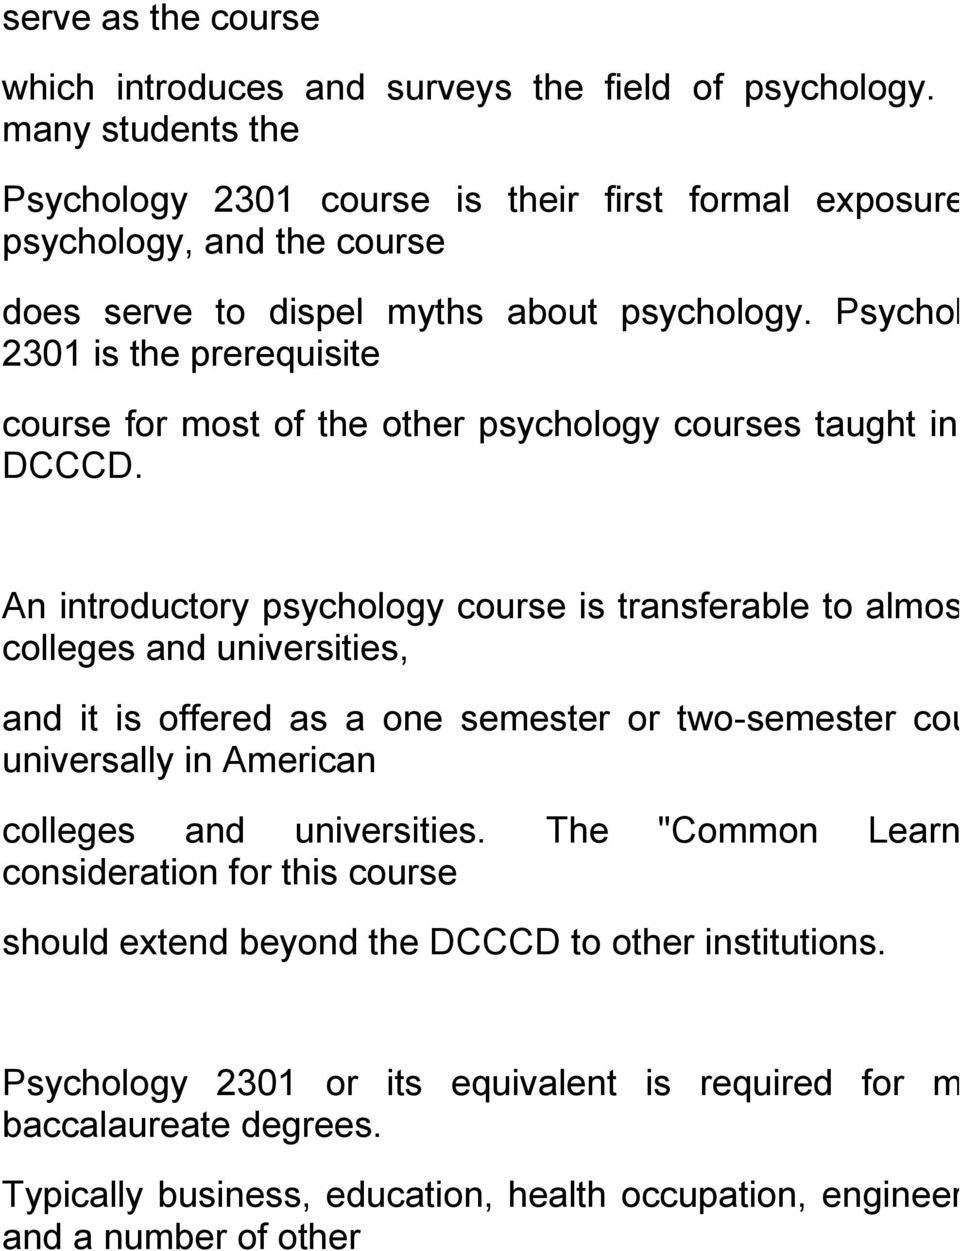 Psychology 2301 is the prerequisite course for most of the other psychology courses taught in the DCCCD.